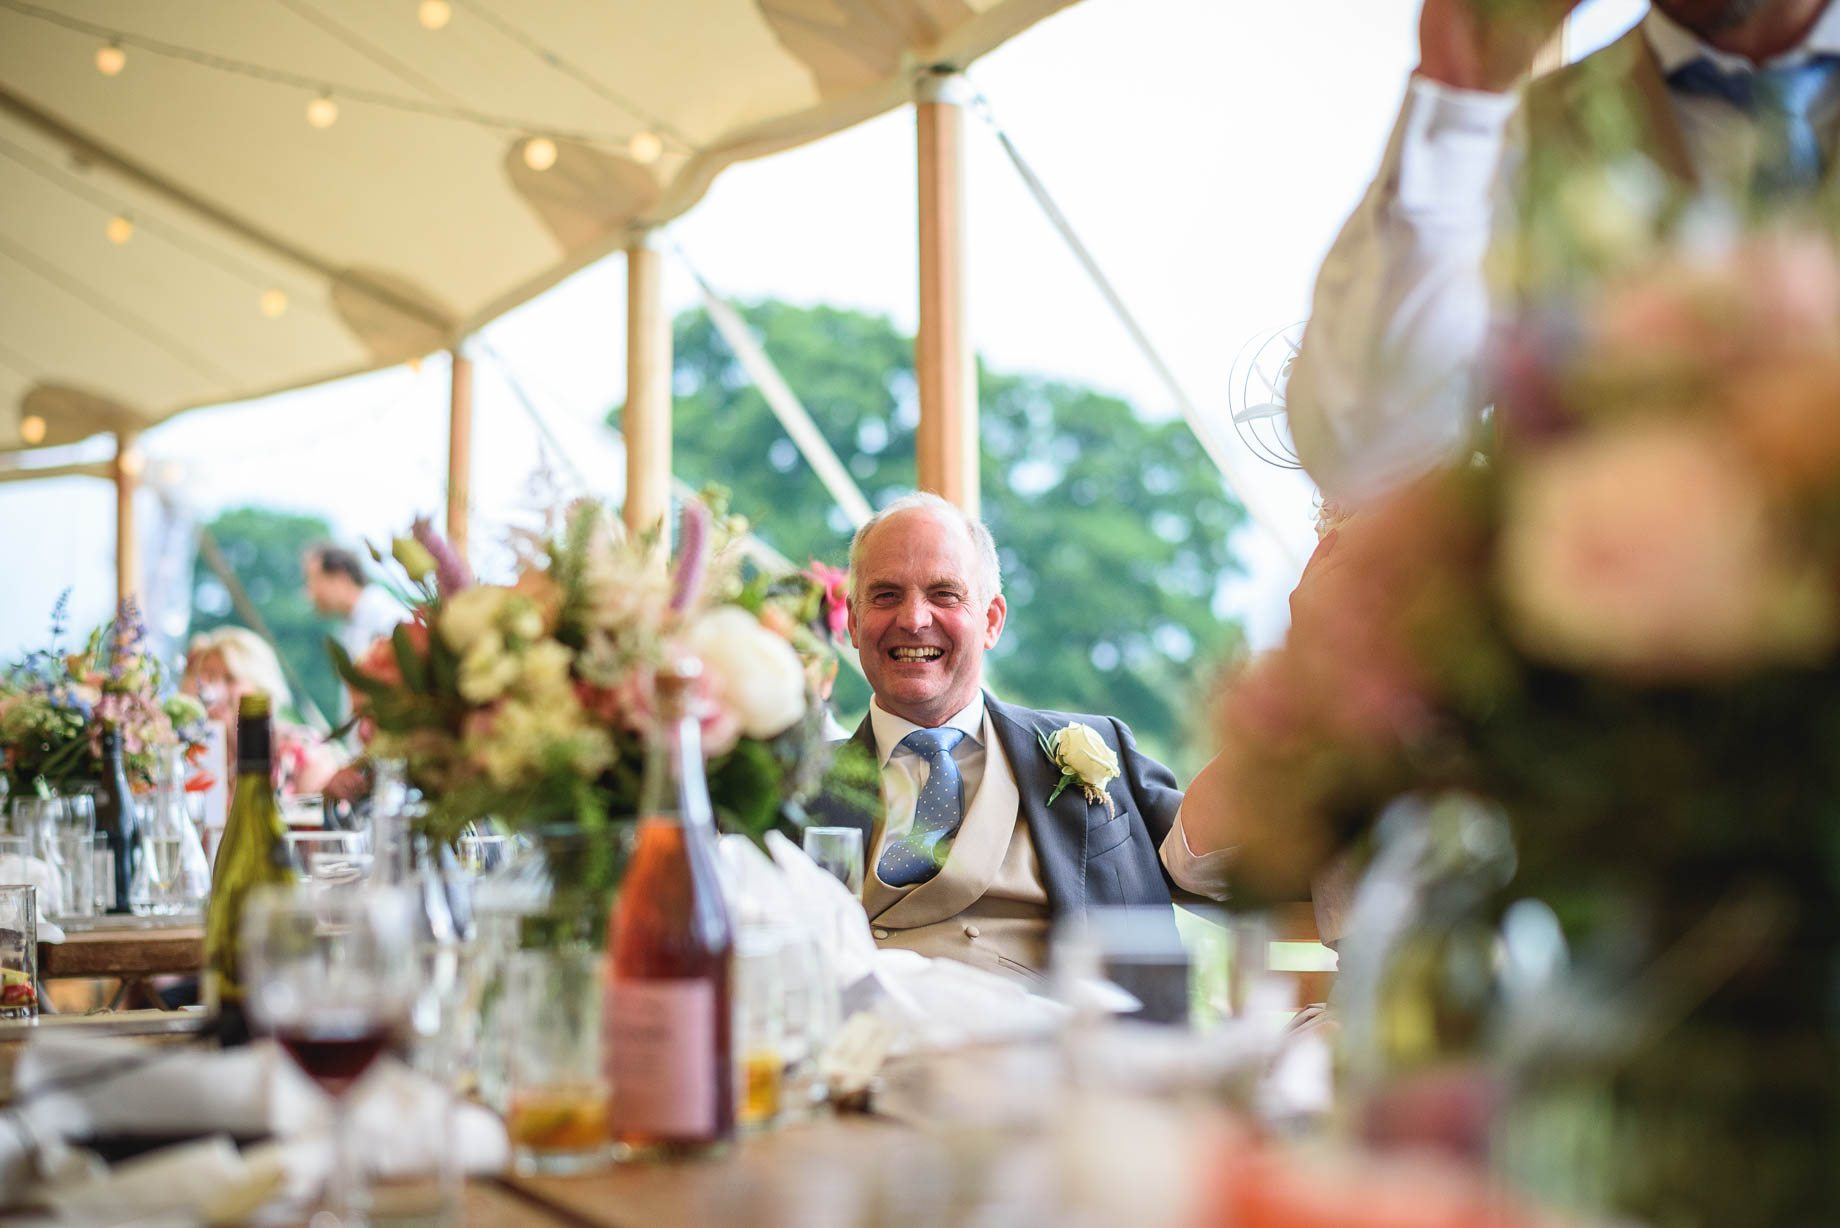 Wiltshire wedding photography by Guy Collier - Lucie and Matt (154 of 198)